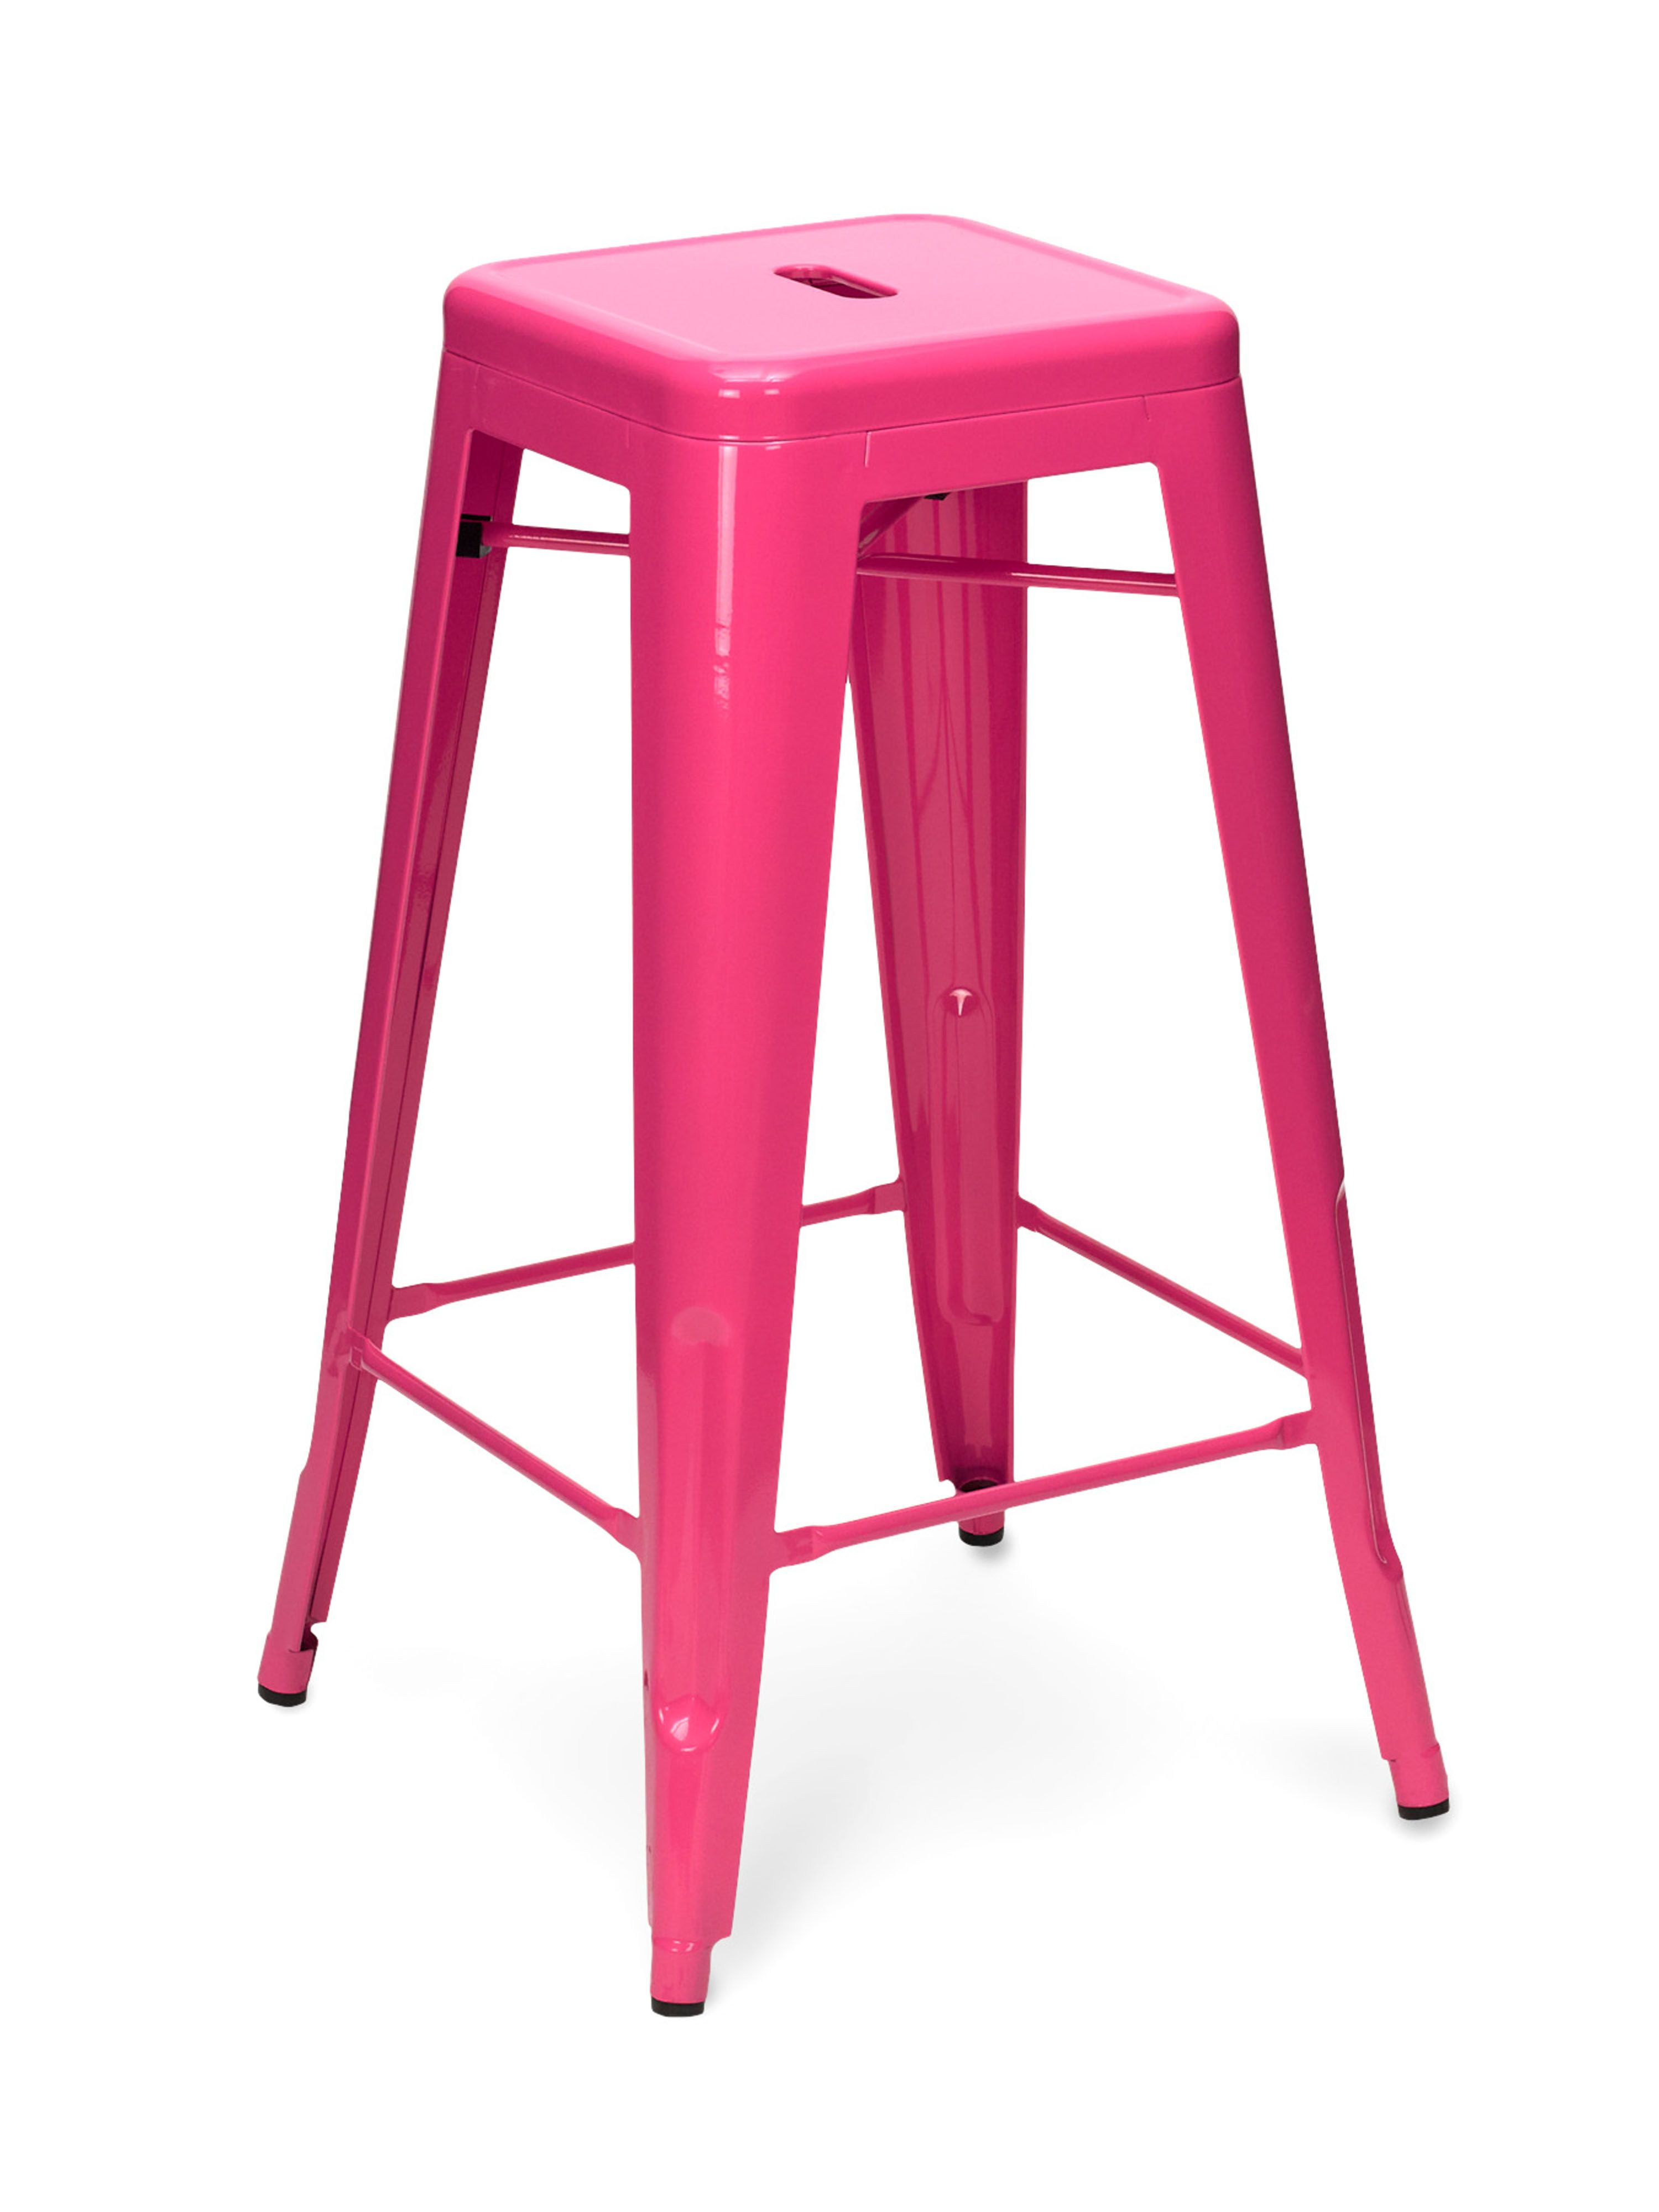 Add A Hot Pink Bar Stool For An Extra Kick Of Color Custom Painted 24 158 Sugarscout Etsy Countryliving